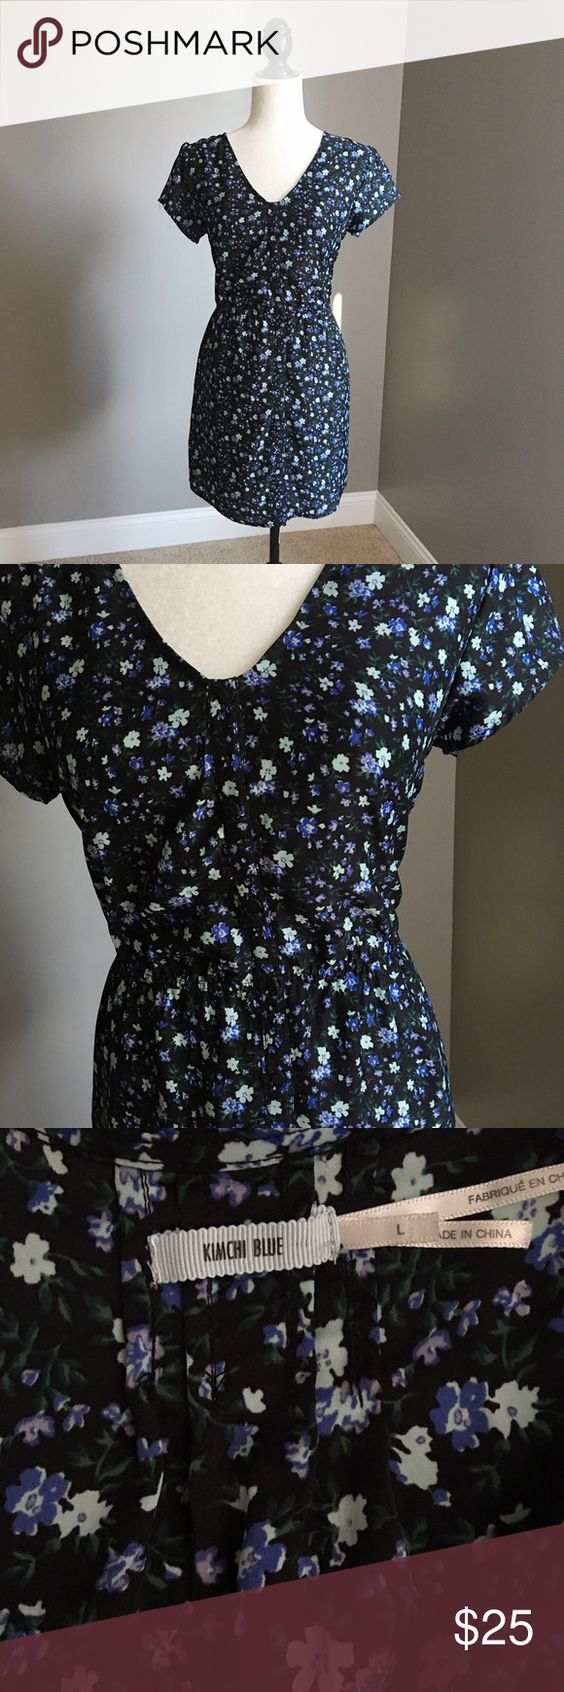 KIMCHI BLUE Black and Blue Floral dress Cute black with blue florals dress featuring working buttons all the way down, pockets, and an elastic at the waist. Excellent condition! Urban Outfitters Dresses